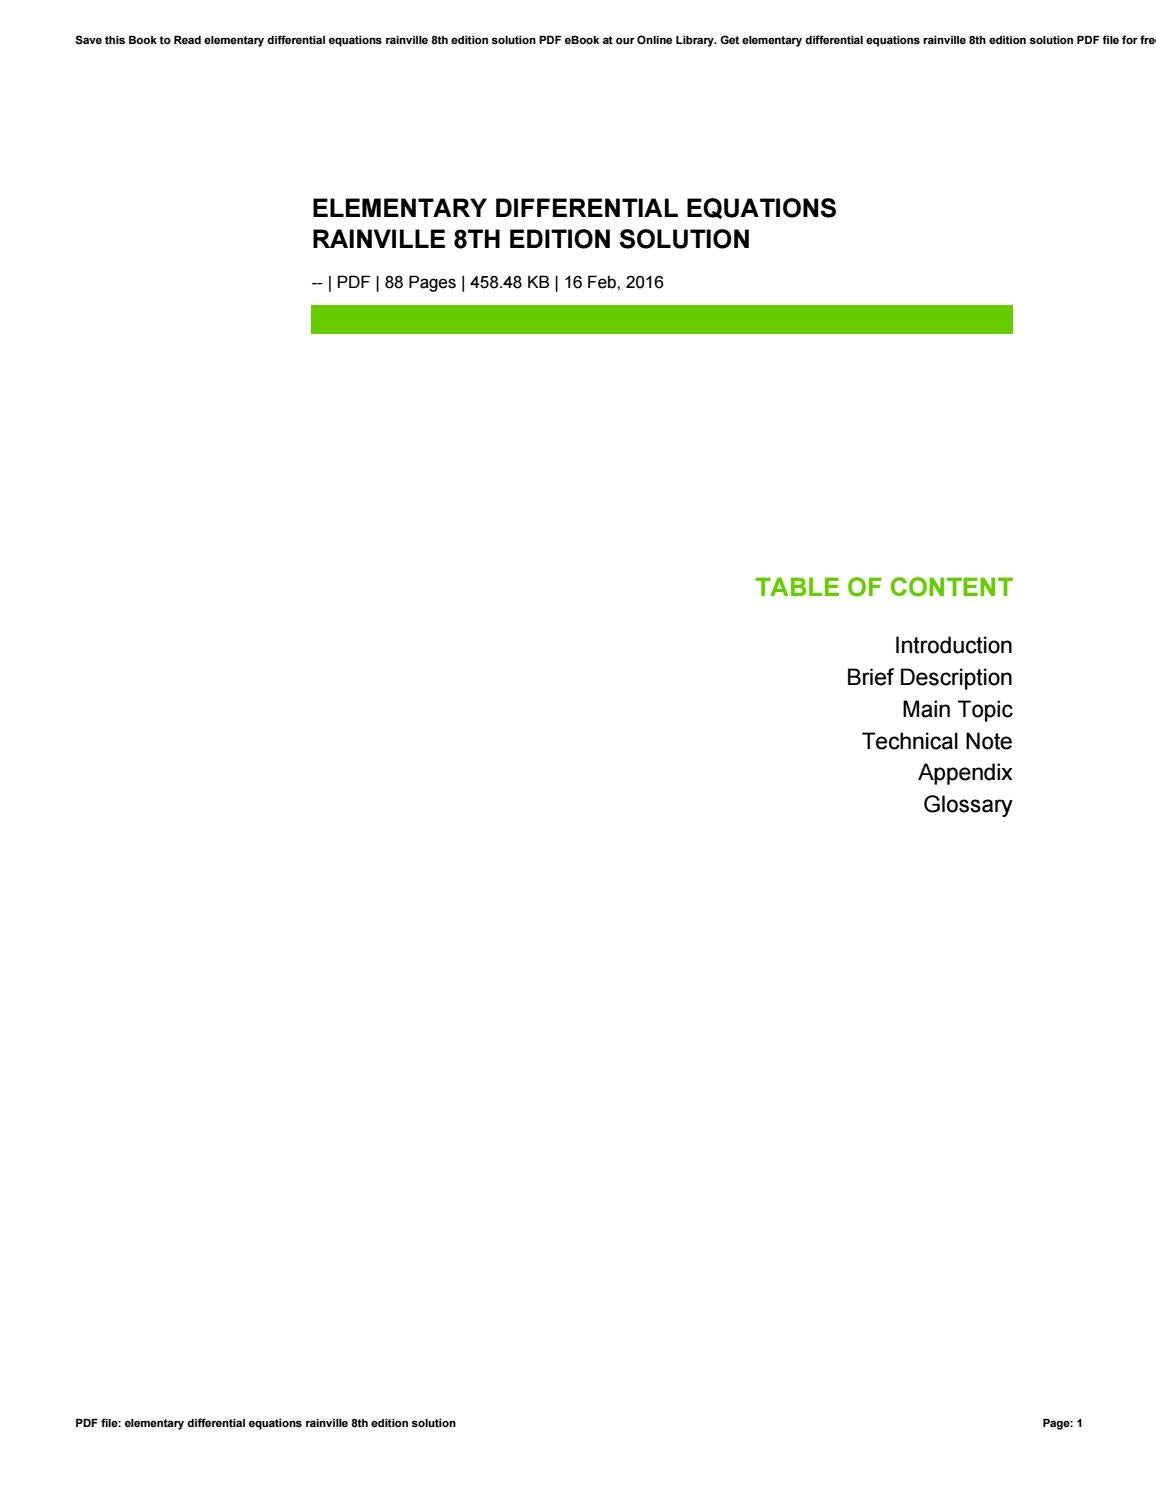 Elementary differential equations rainville 8th edition solution by s065 -  issuu